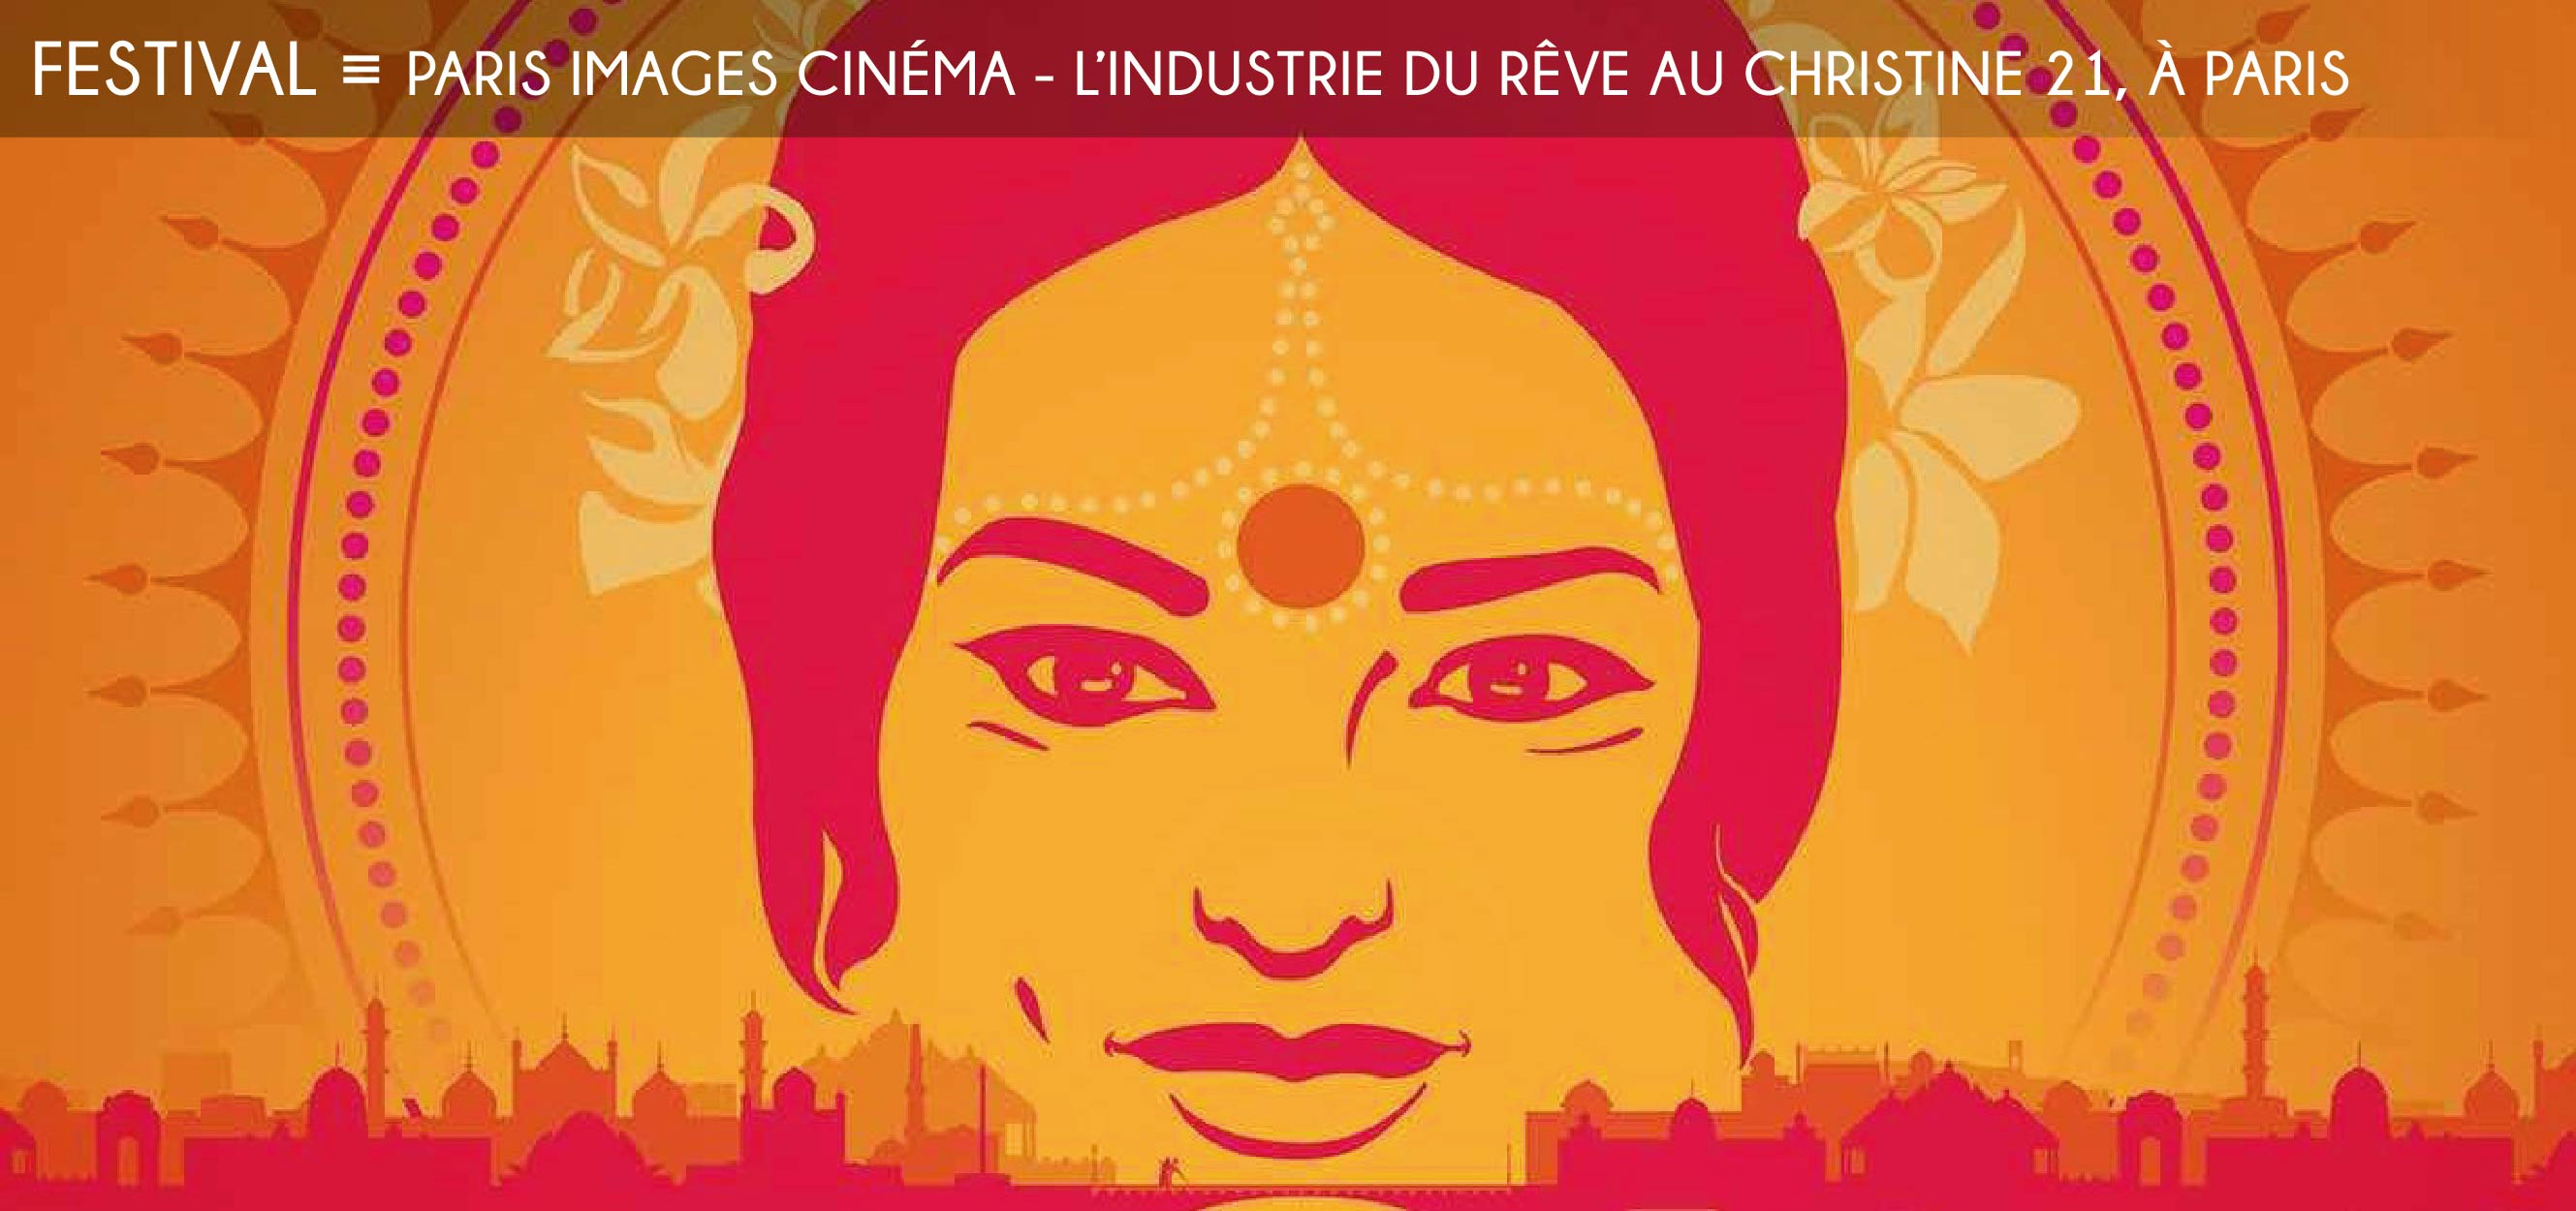 cinema indien, paris images cinema lindustrie du reve, production, diffusion, distribution, techniciens, jean renoir, louis malle, anne seibel, befikre, fleuve, cinema